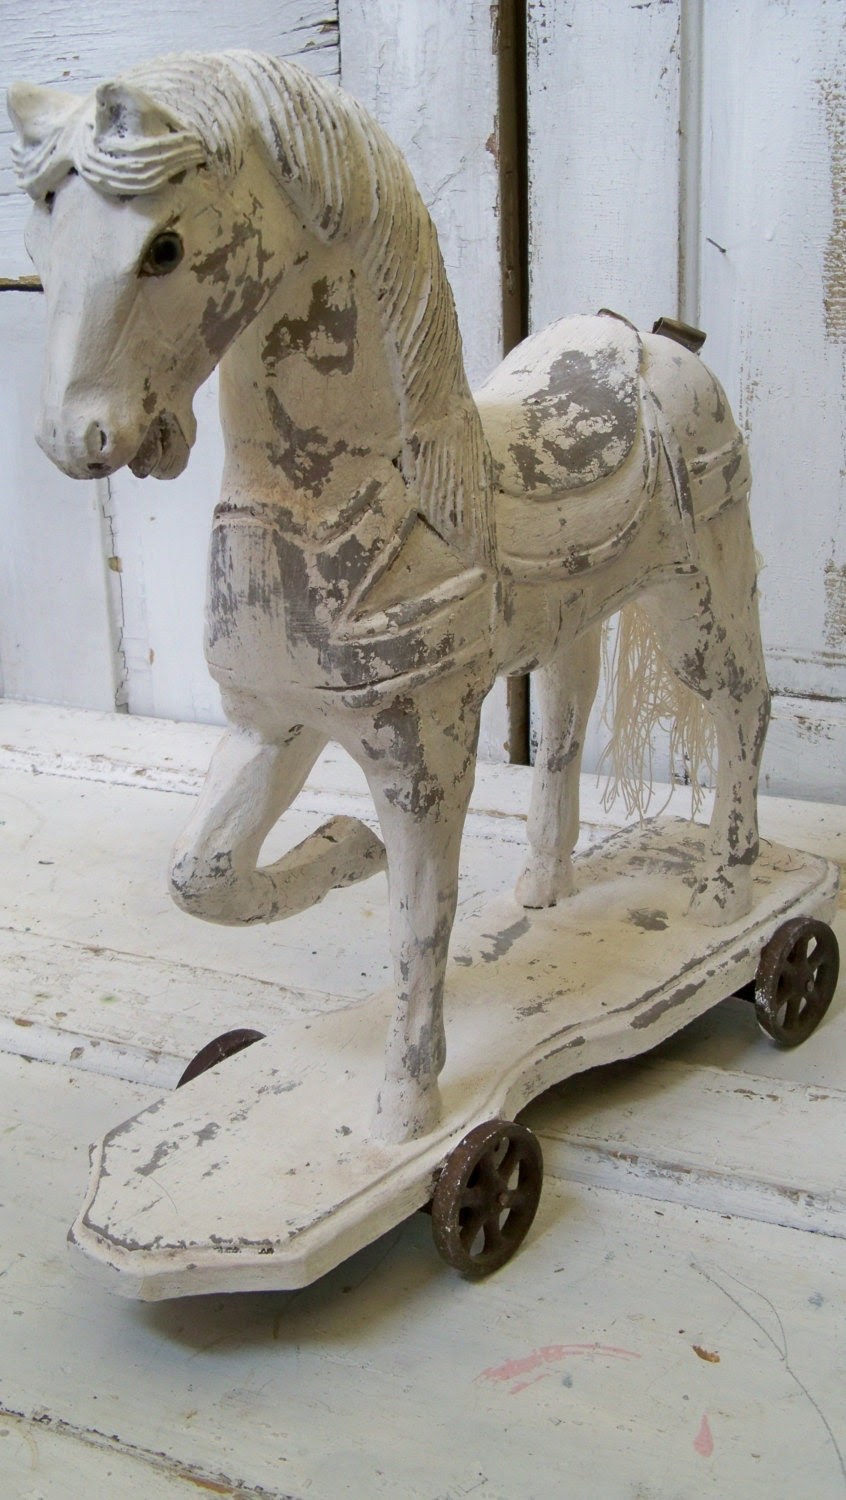 Large wood horse hand painted gray white rusty wheels French Nordic inspired wooden sculpture Anita Spero